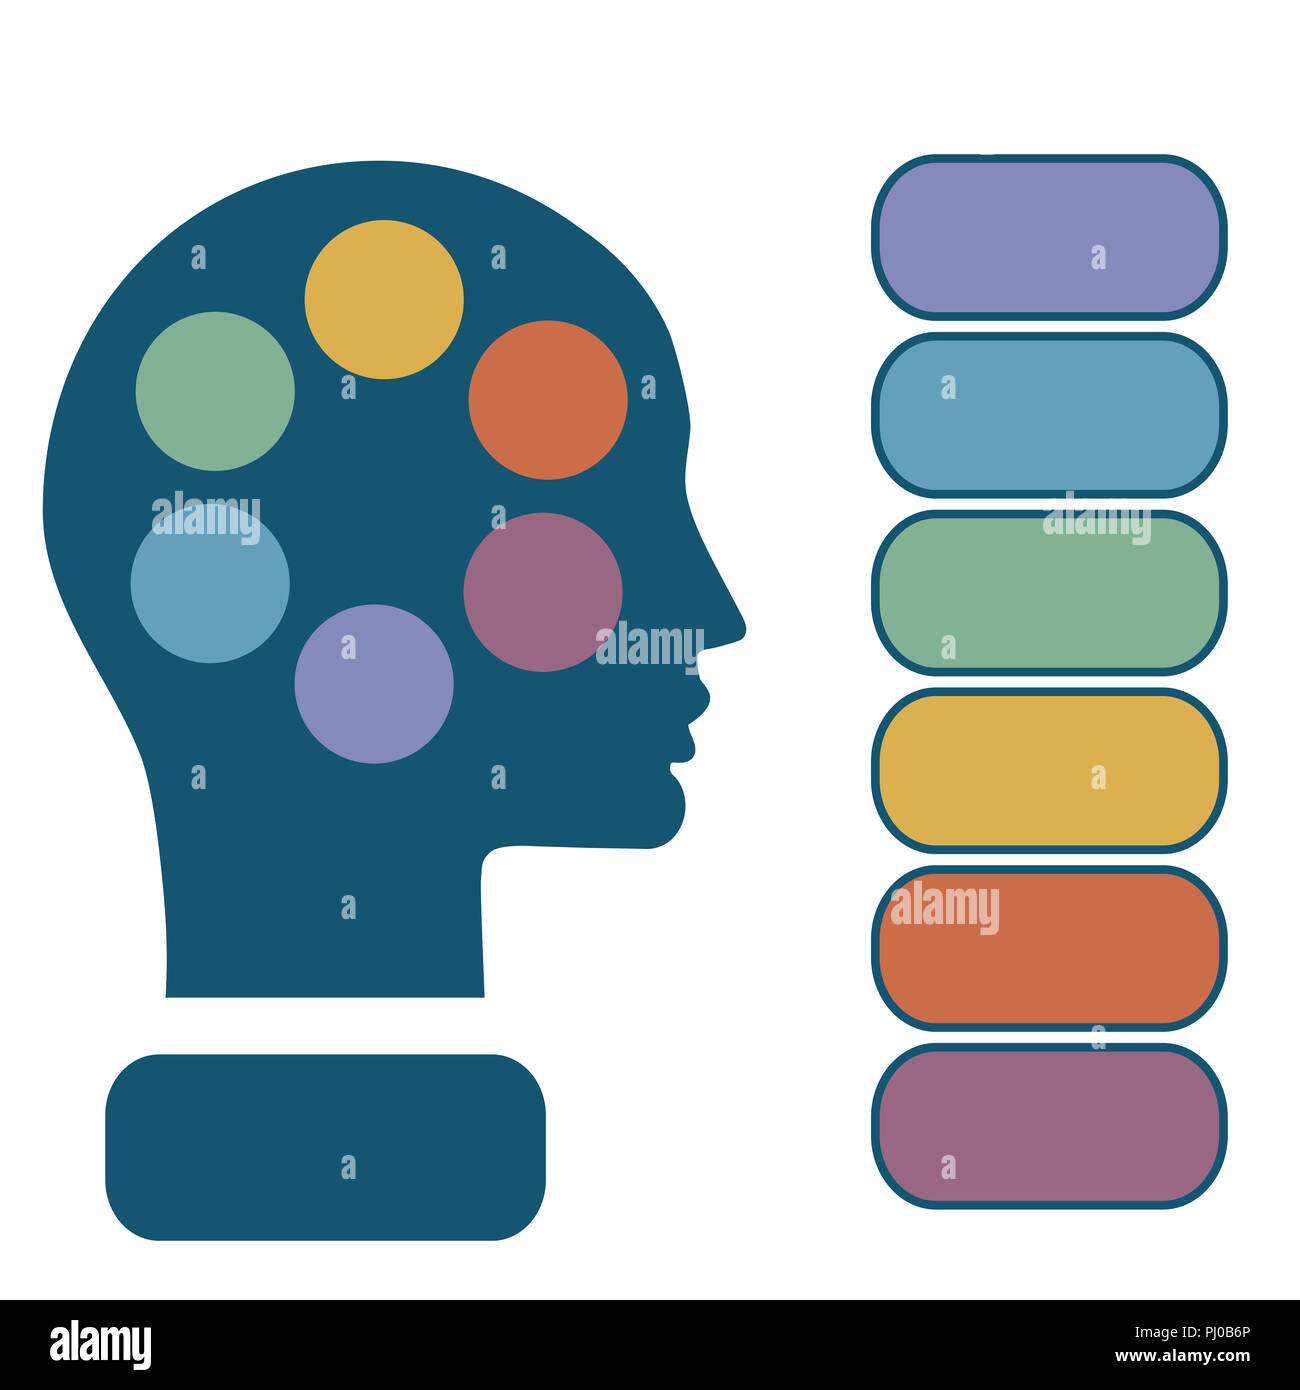 Illustration infographic, head of man, concept thinking human, template for 6 positions, steps, options or parts - Stock Image